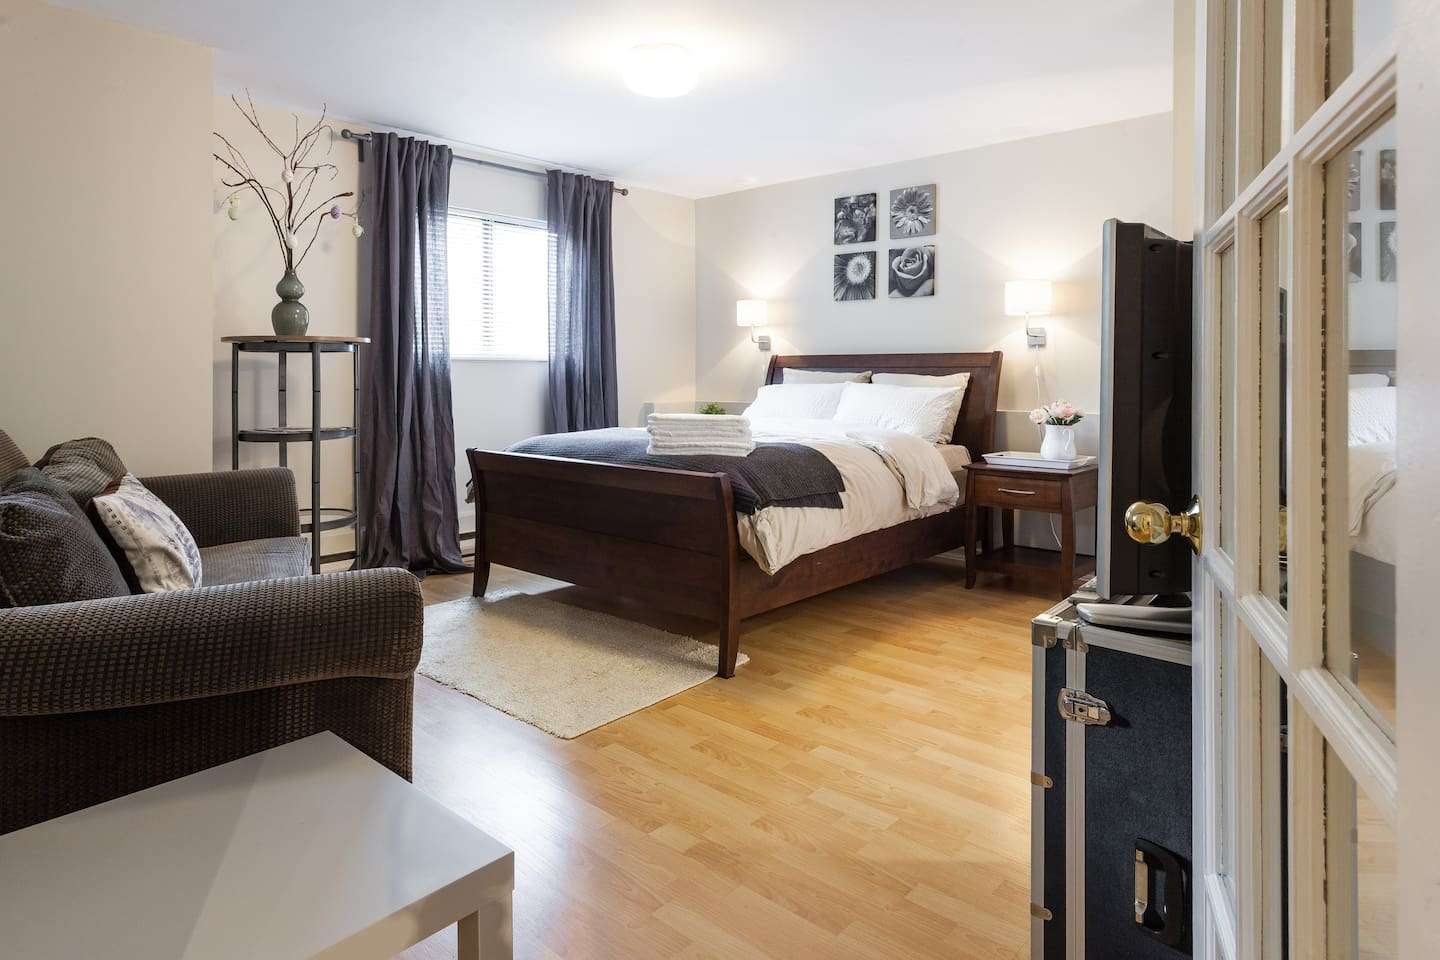 Furnished, ground level, newly renovated suite in central Coquitlam. Located in a house situated on quiet street near park. Walking distance to shopping mall, bus loop, train to downtown Vancouver. Private backyard.